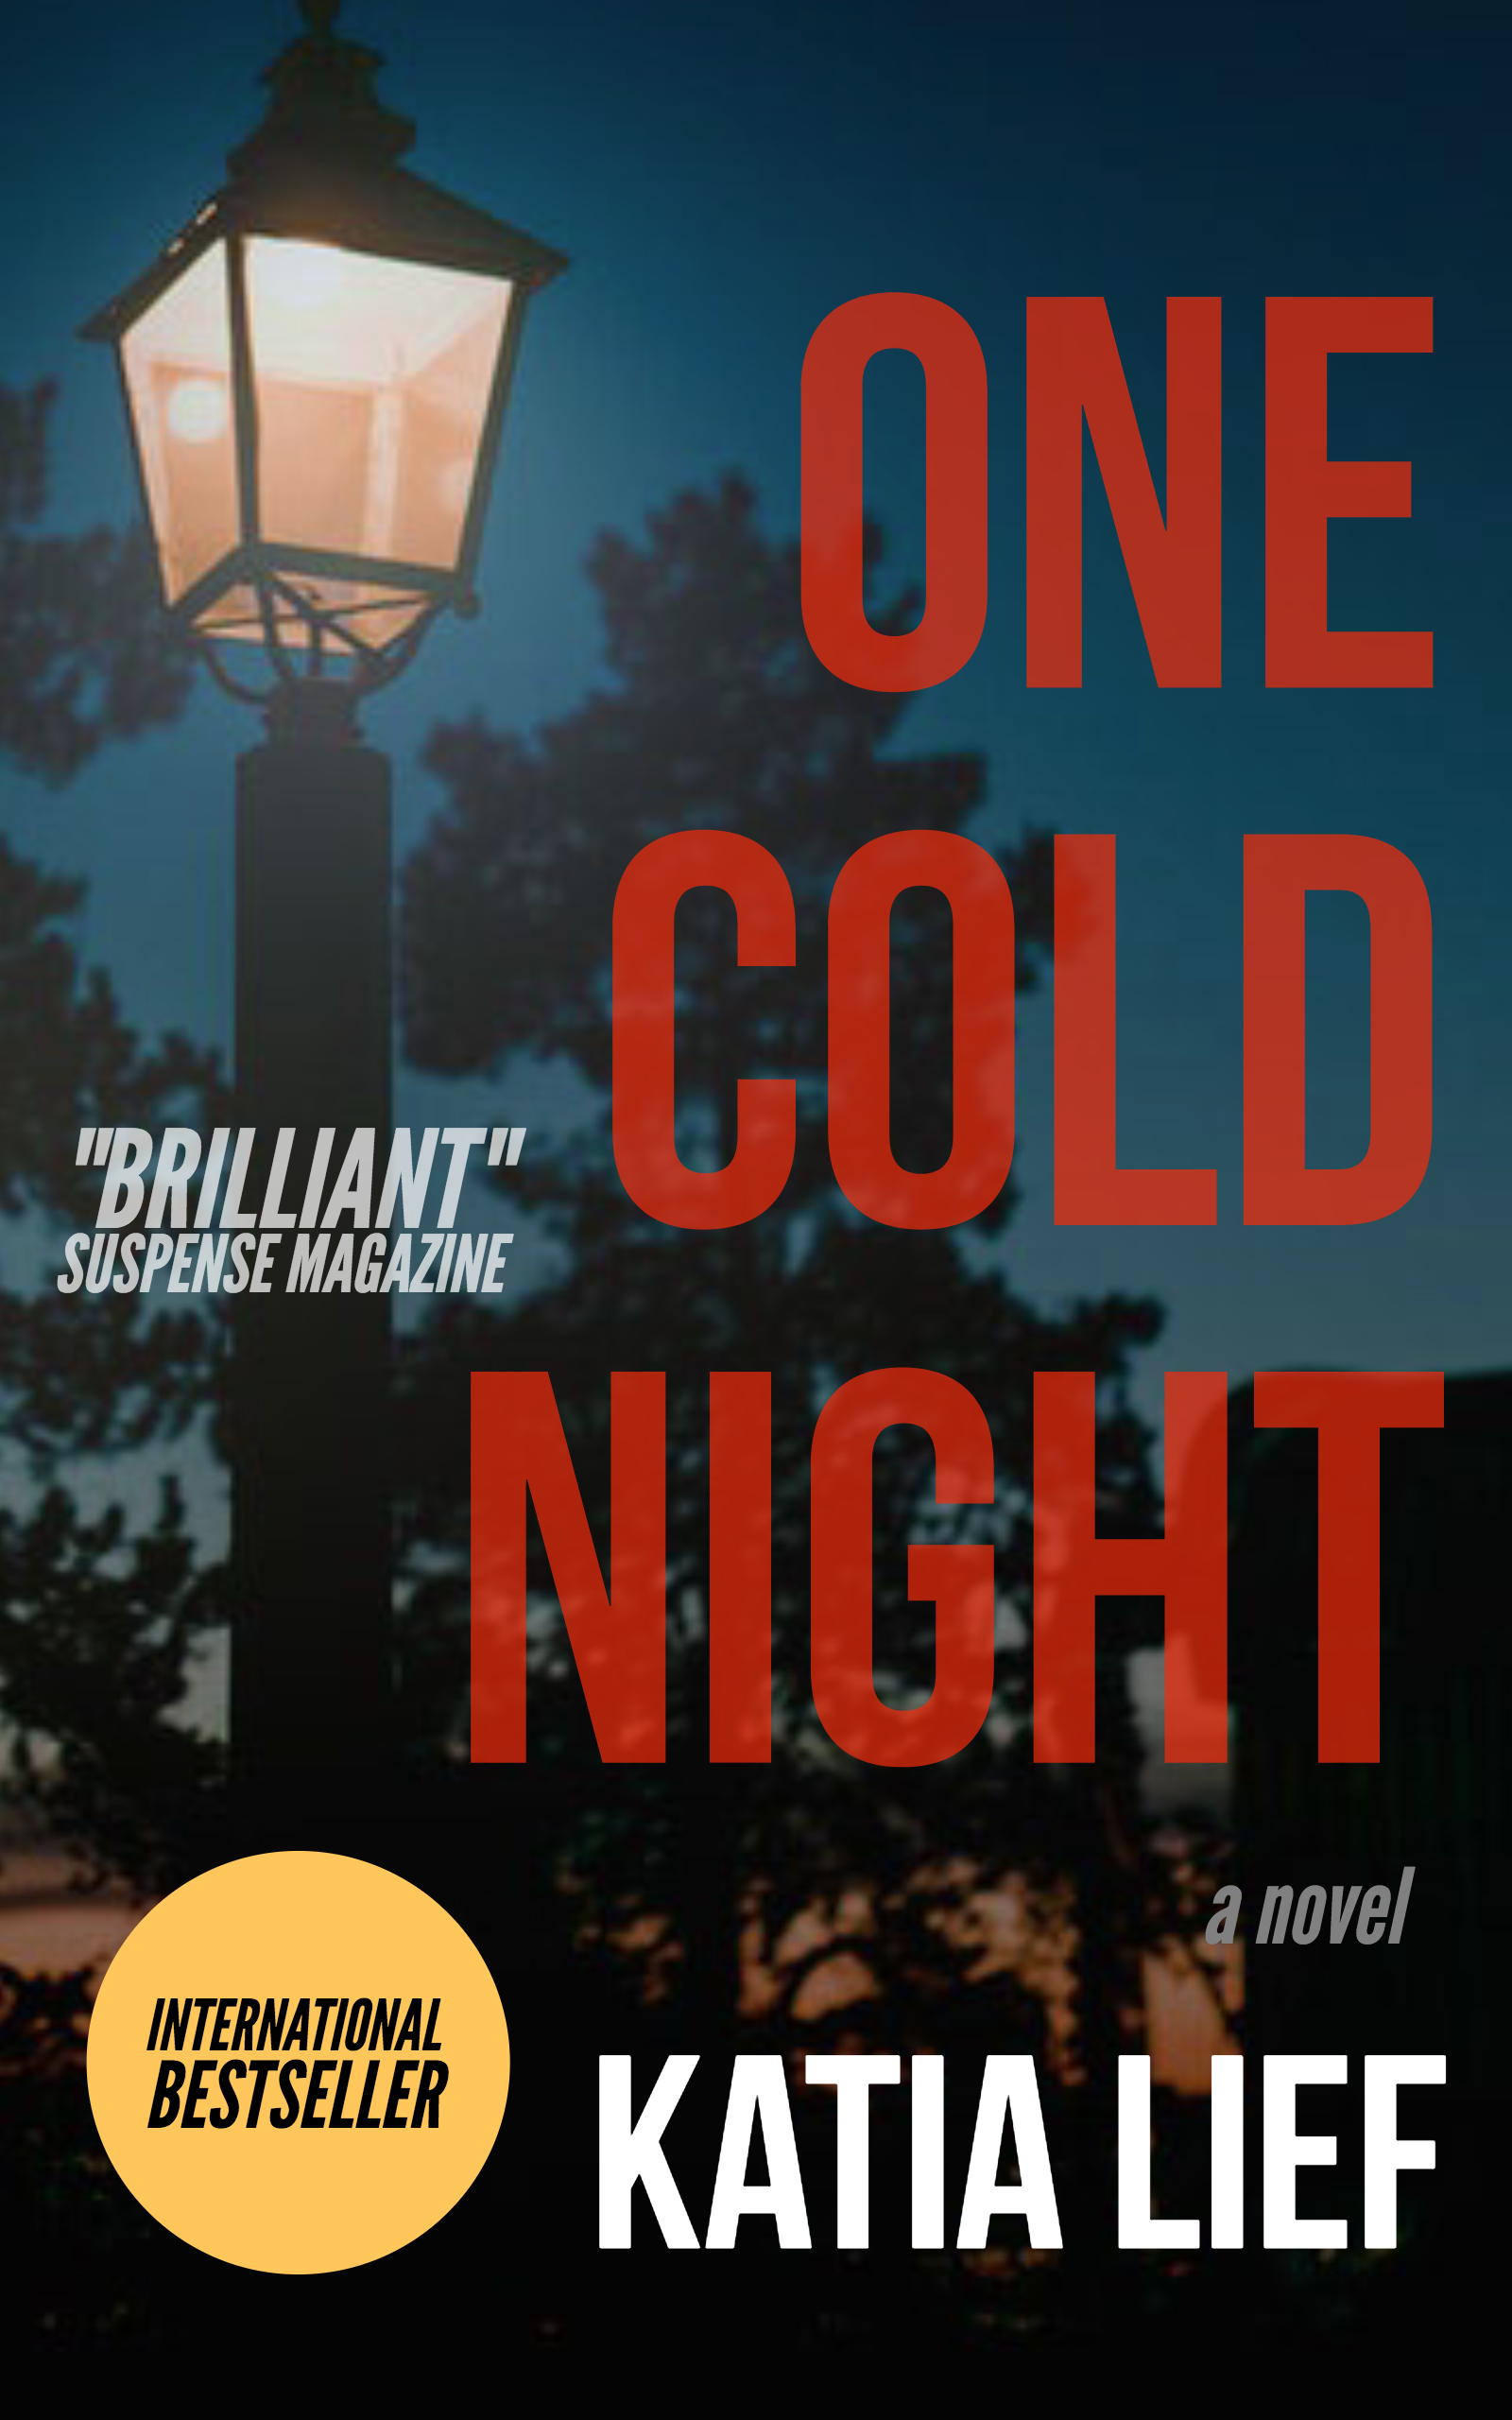 - Detective Dave Strauss is haunted by the one case he couldn't solve: a schoolgirl vanished off the streets of Brooklyn, never to be seen again. Now the cold dark night has engulfed another young girl...but this time she is part of Dave's family.Learn More